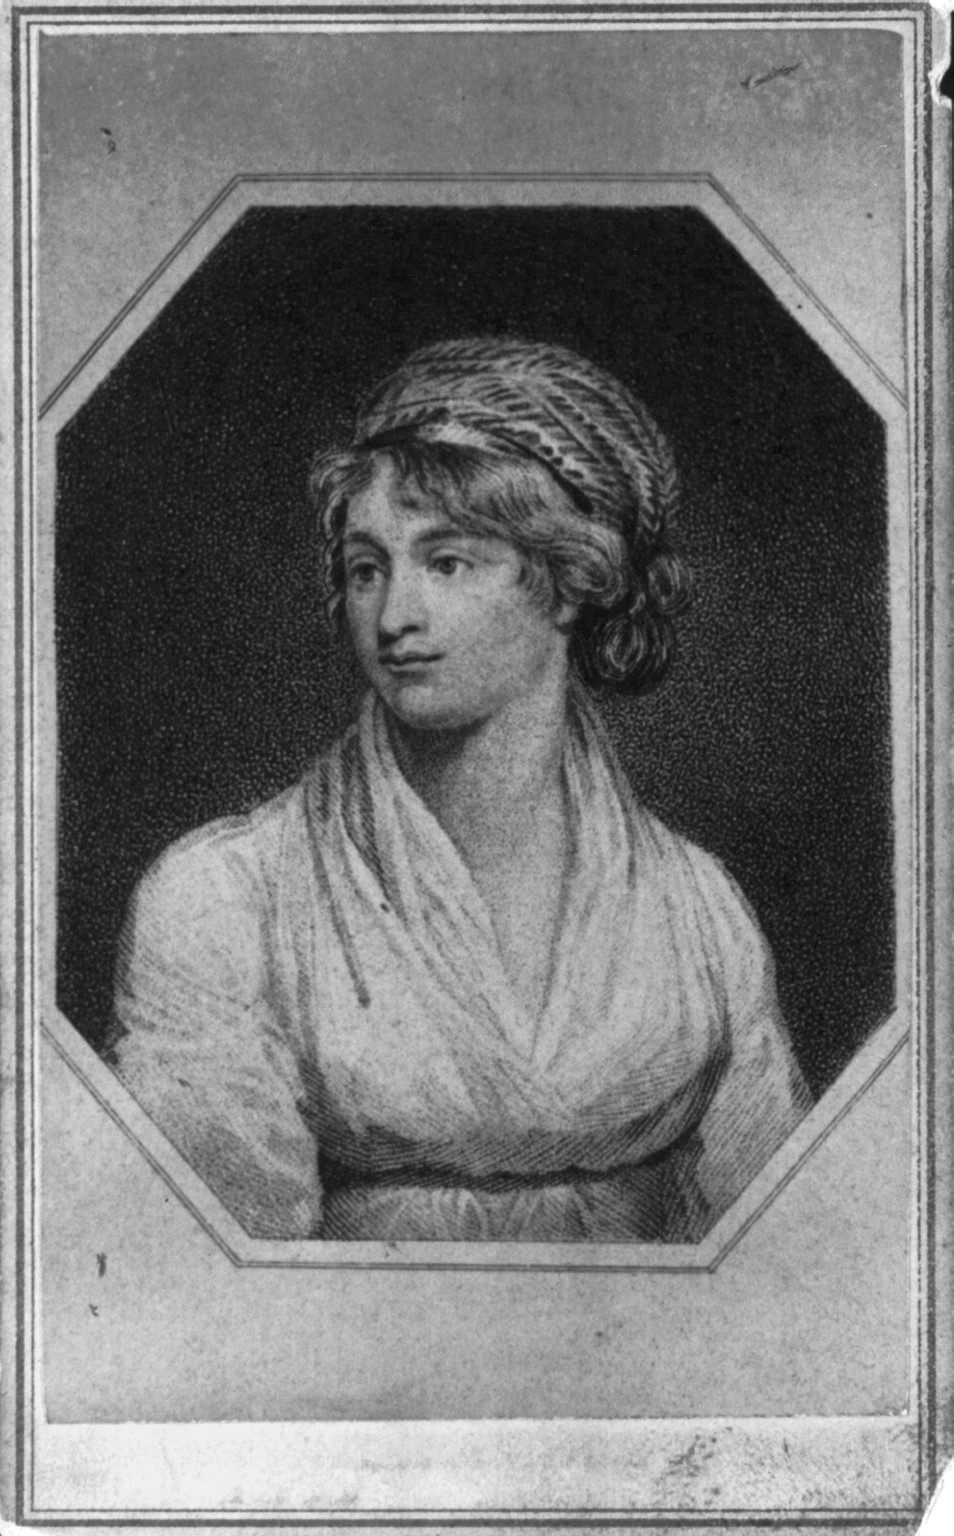 Mary Wollstonecraft engraving